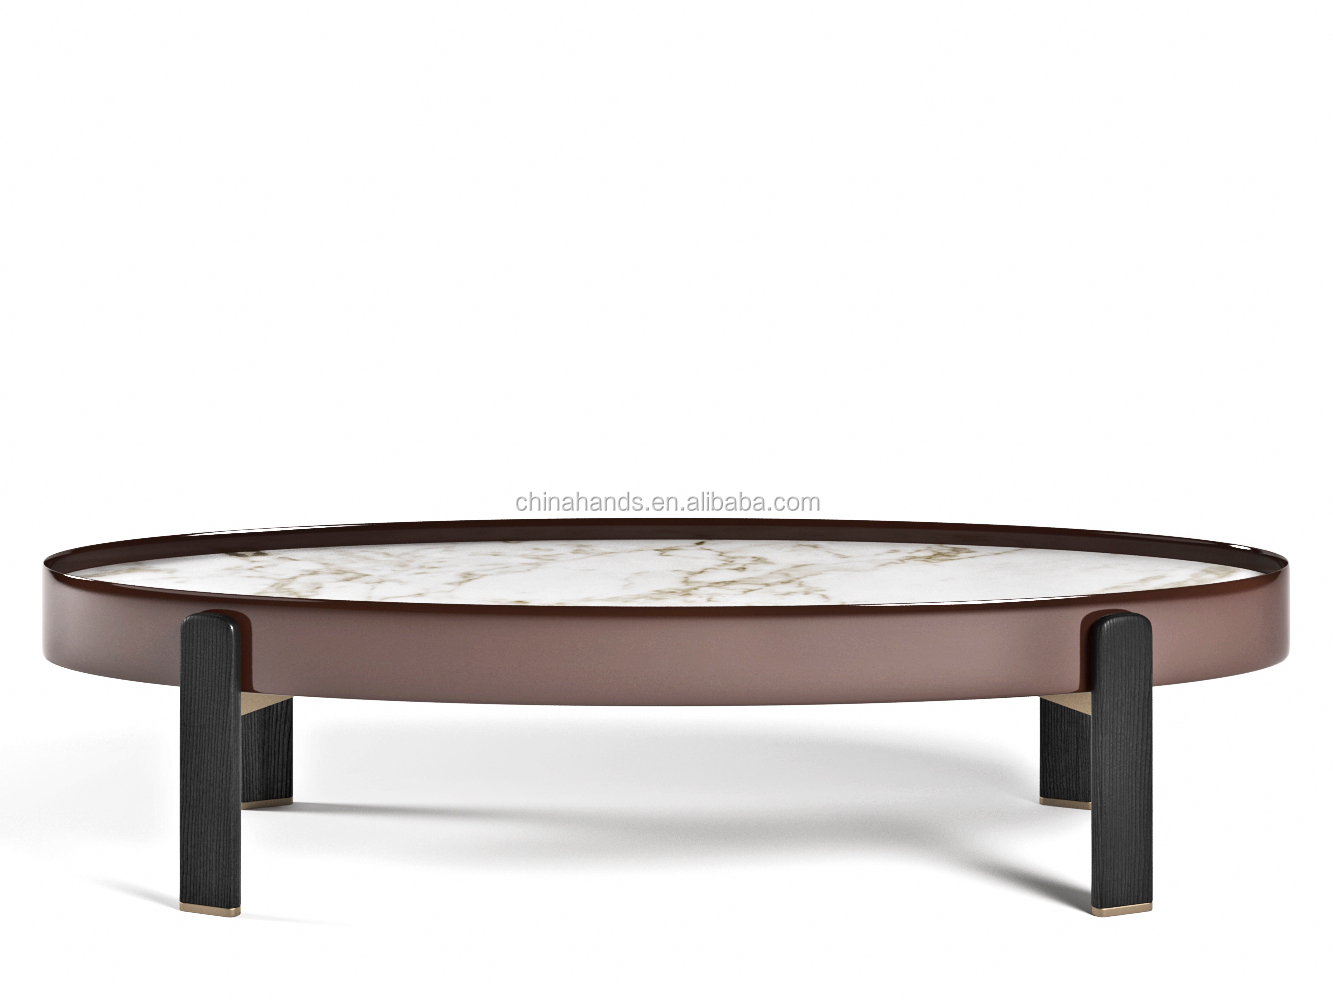 MA-QPR35 5 Star hotel Furniture  Marble Table Top Metal Leg Coffee Table